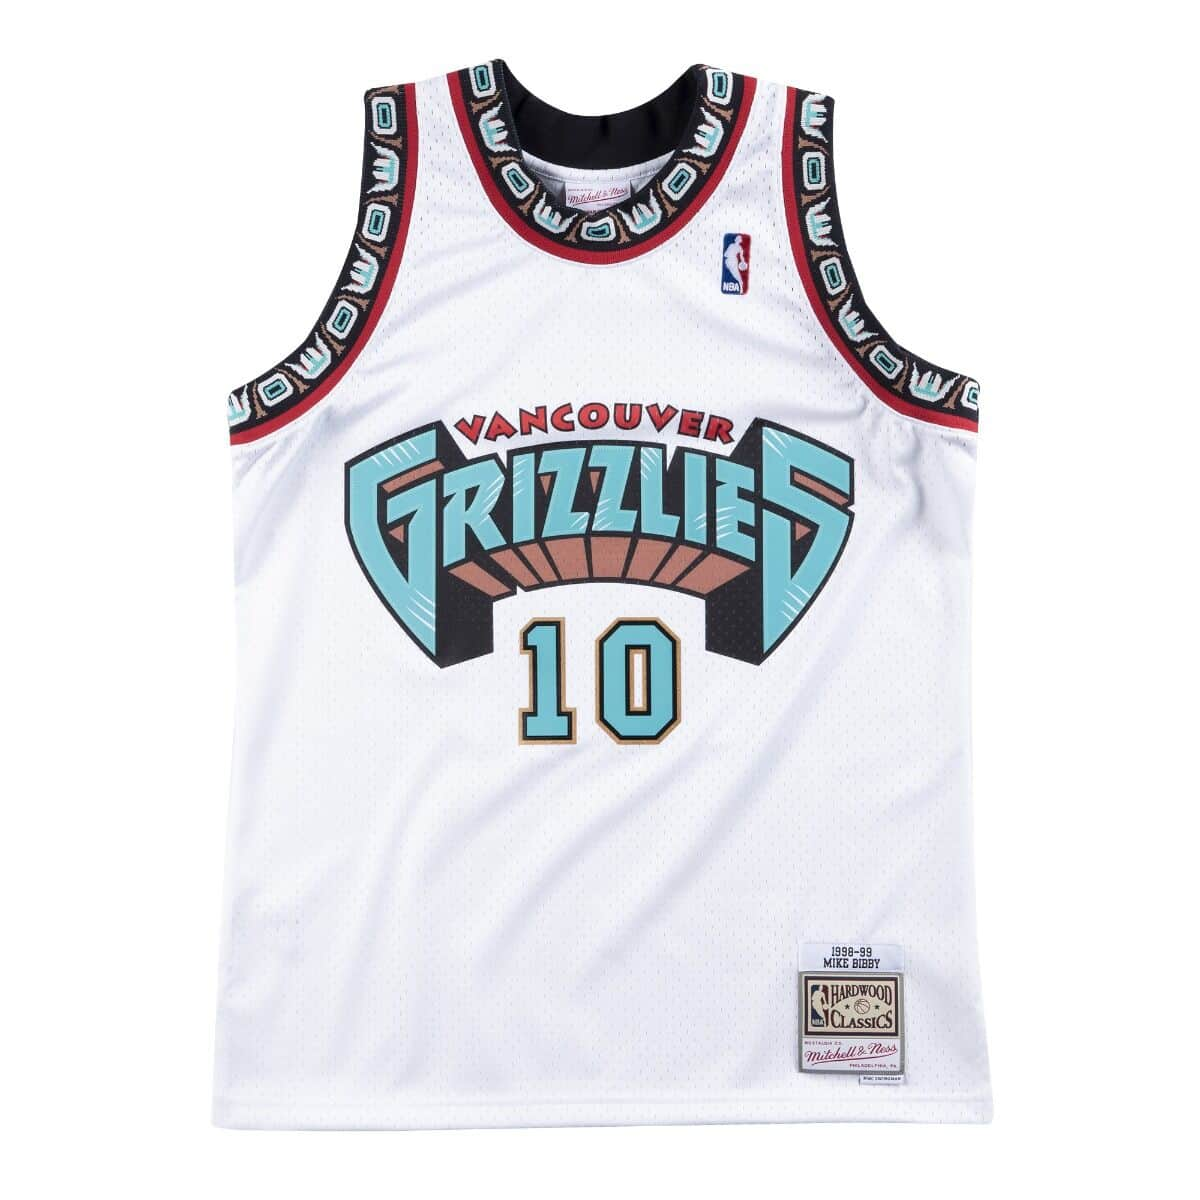 Swingman Jersey Vancouver Grizzlies Home 1998-99 Mike Bibby